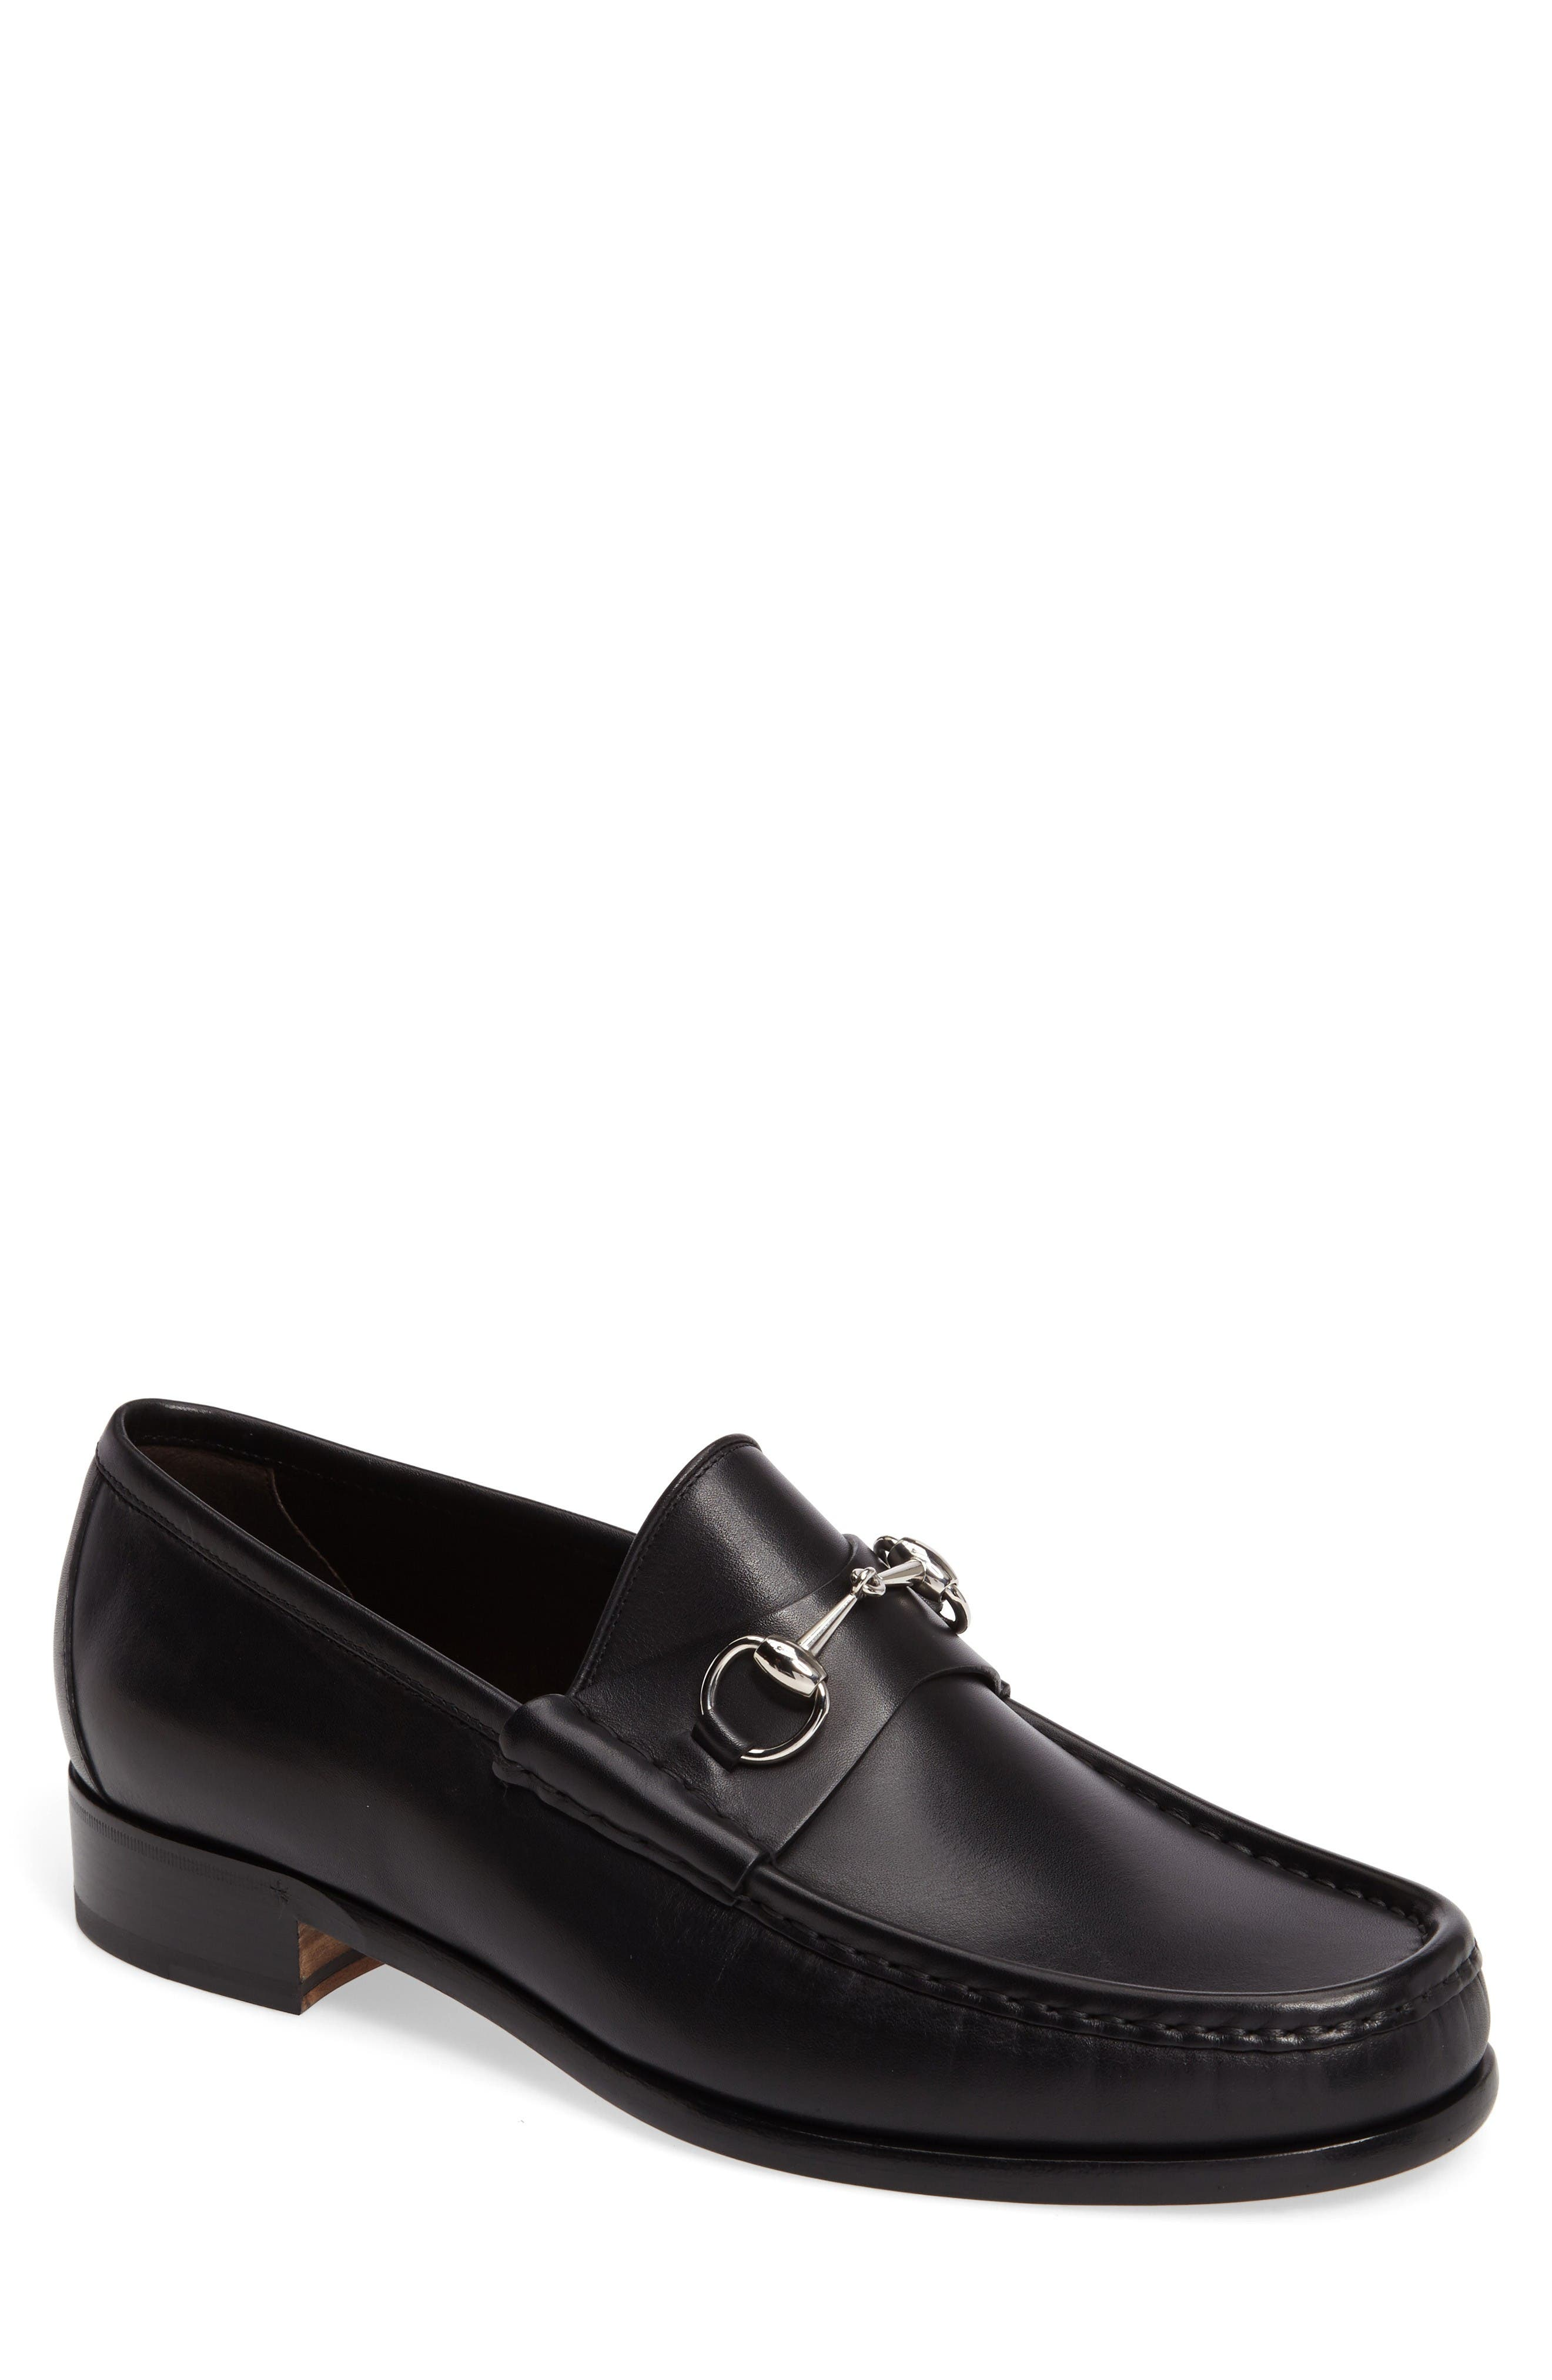 Main Image - Gucci Classic Leather Moccasin